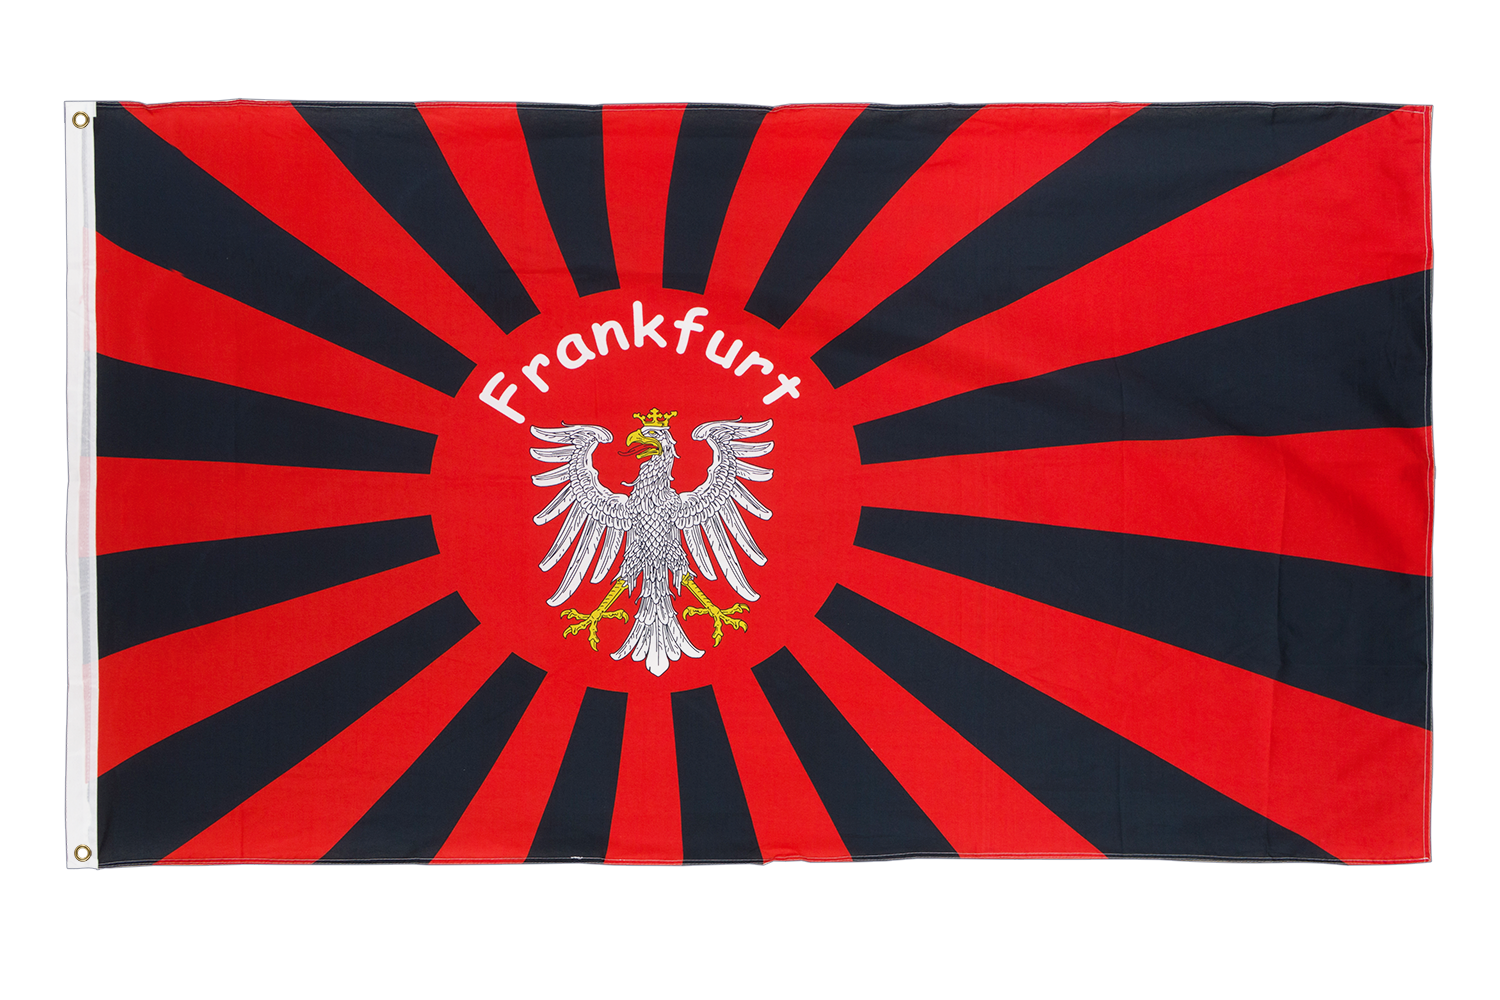 frankfurt rising sun 3x5 ft flag 90x150 cm royal flags. Black Bedroom Furniture Sets. Home Design Ideas